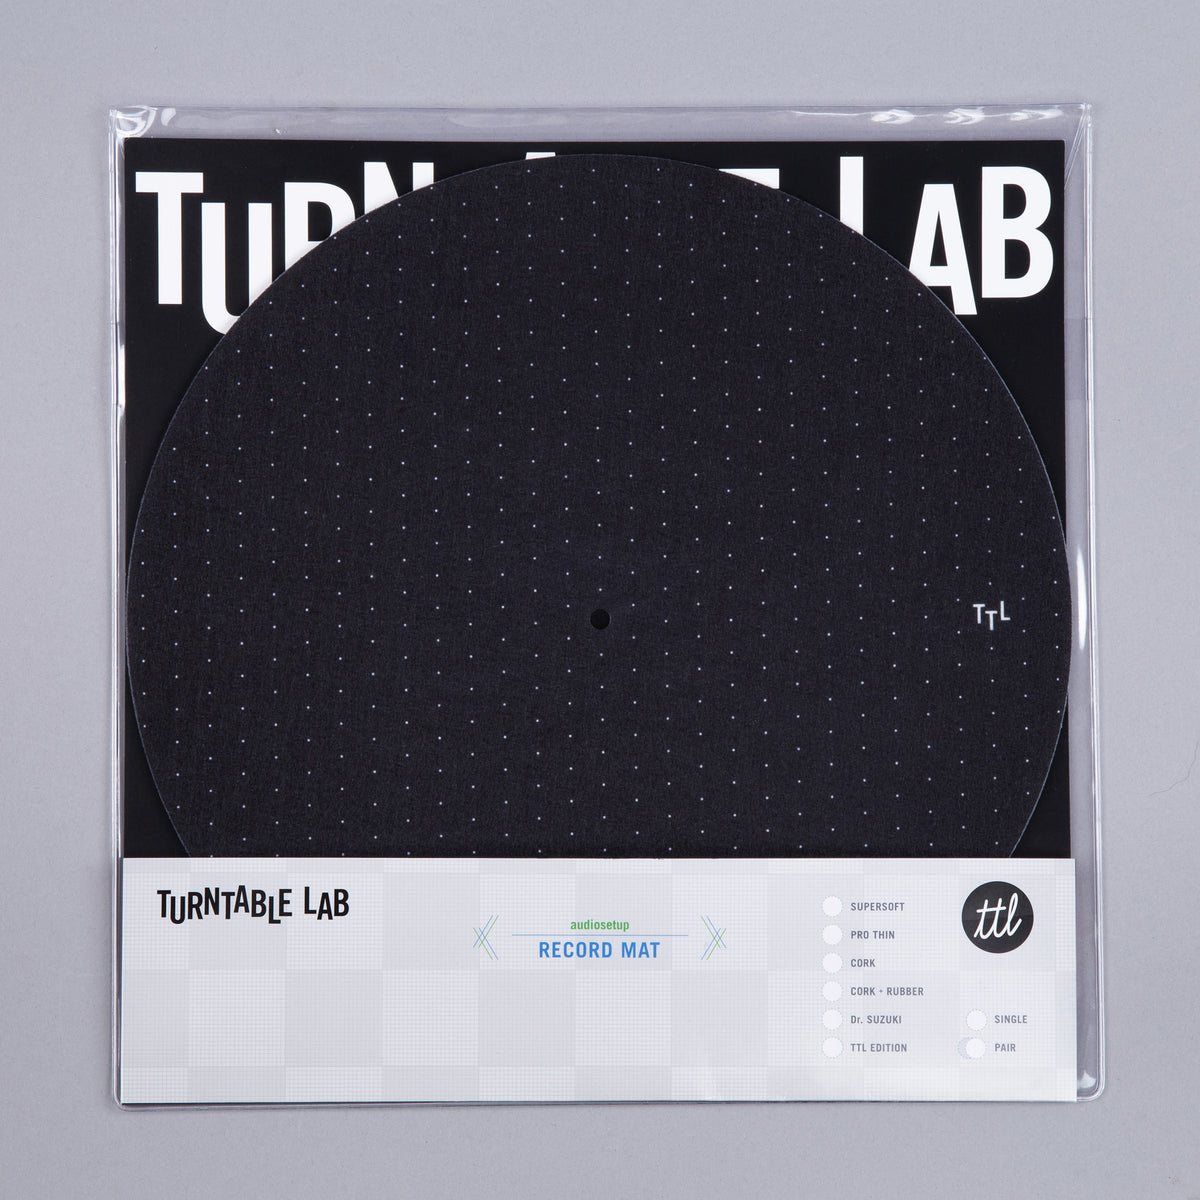 Turntable Lab: Dot Pattern Slipmat Record Mat - Black